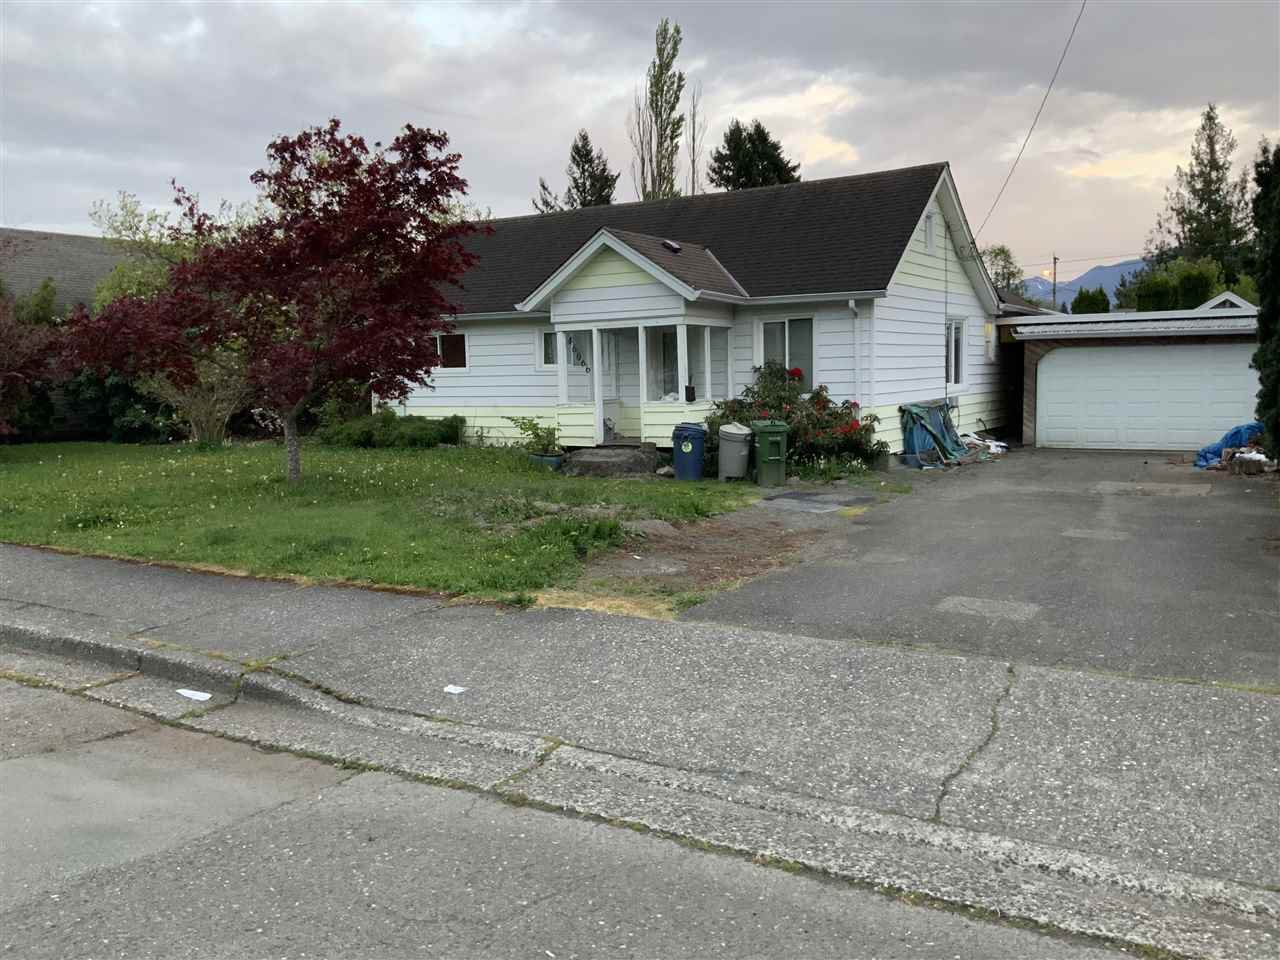 Main Photo: 46066 SECOND Avenue in Chilliwack: Chilliwack E Young-Yale House for sale : MLS®# R2518810